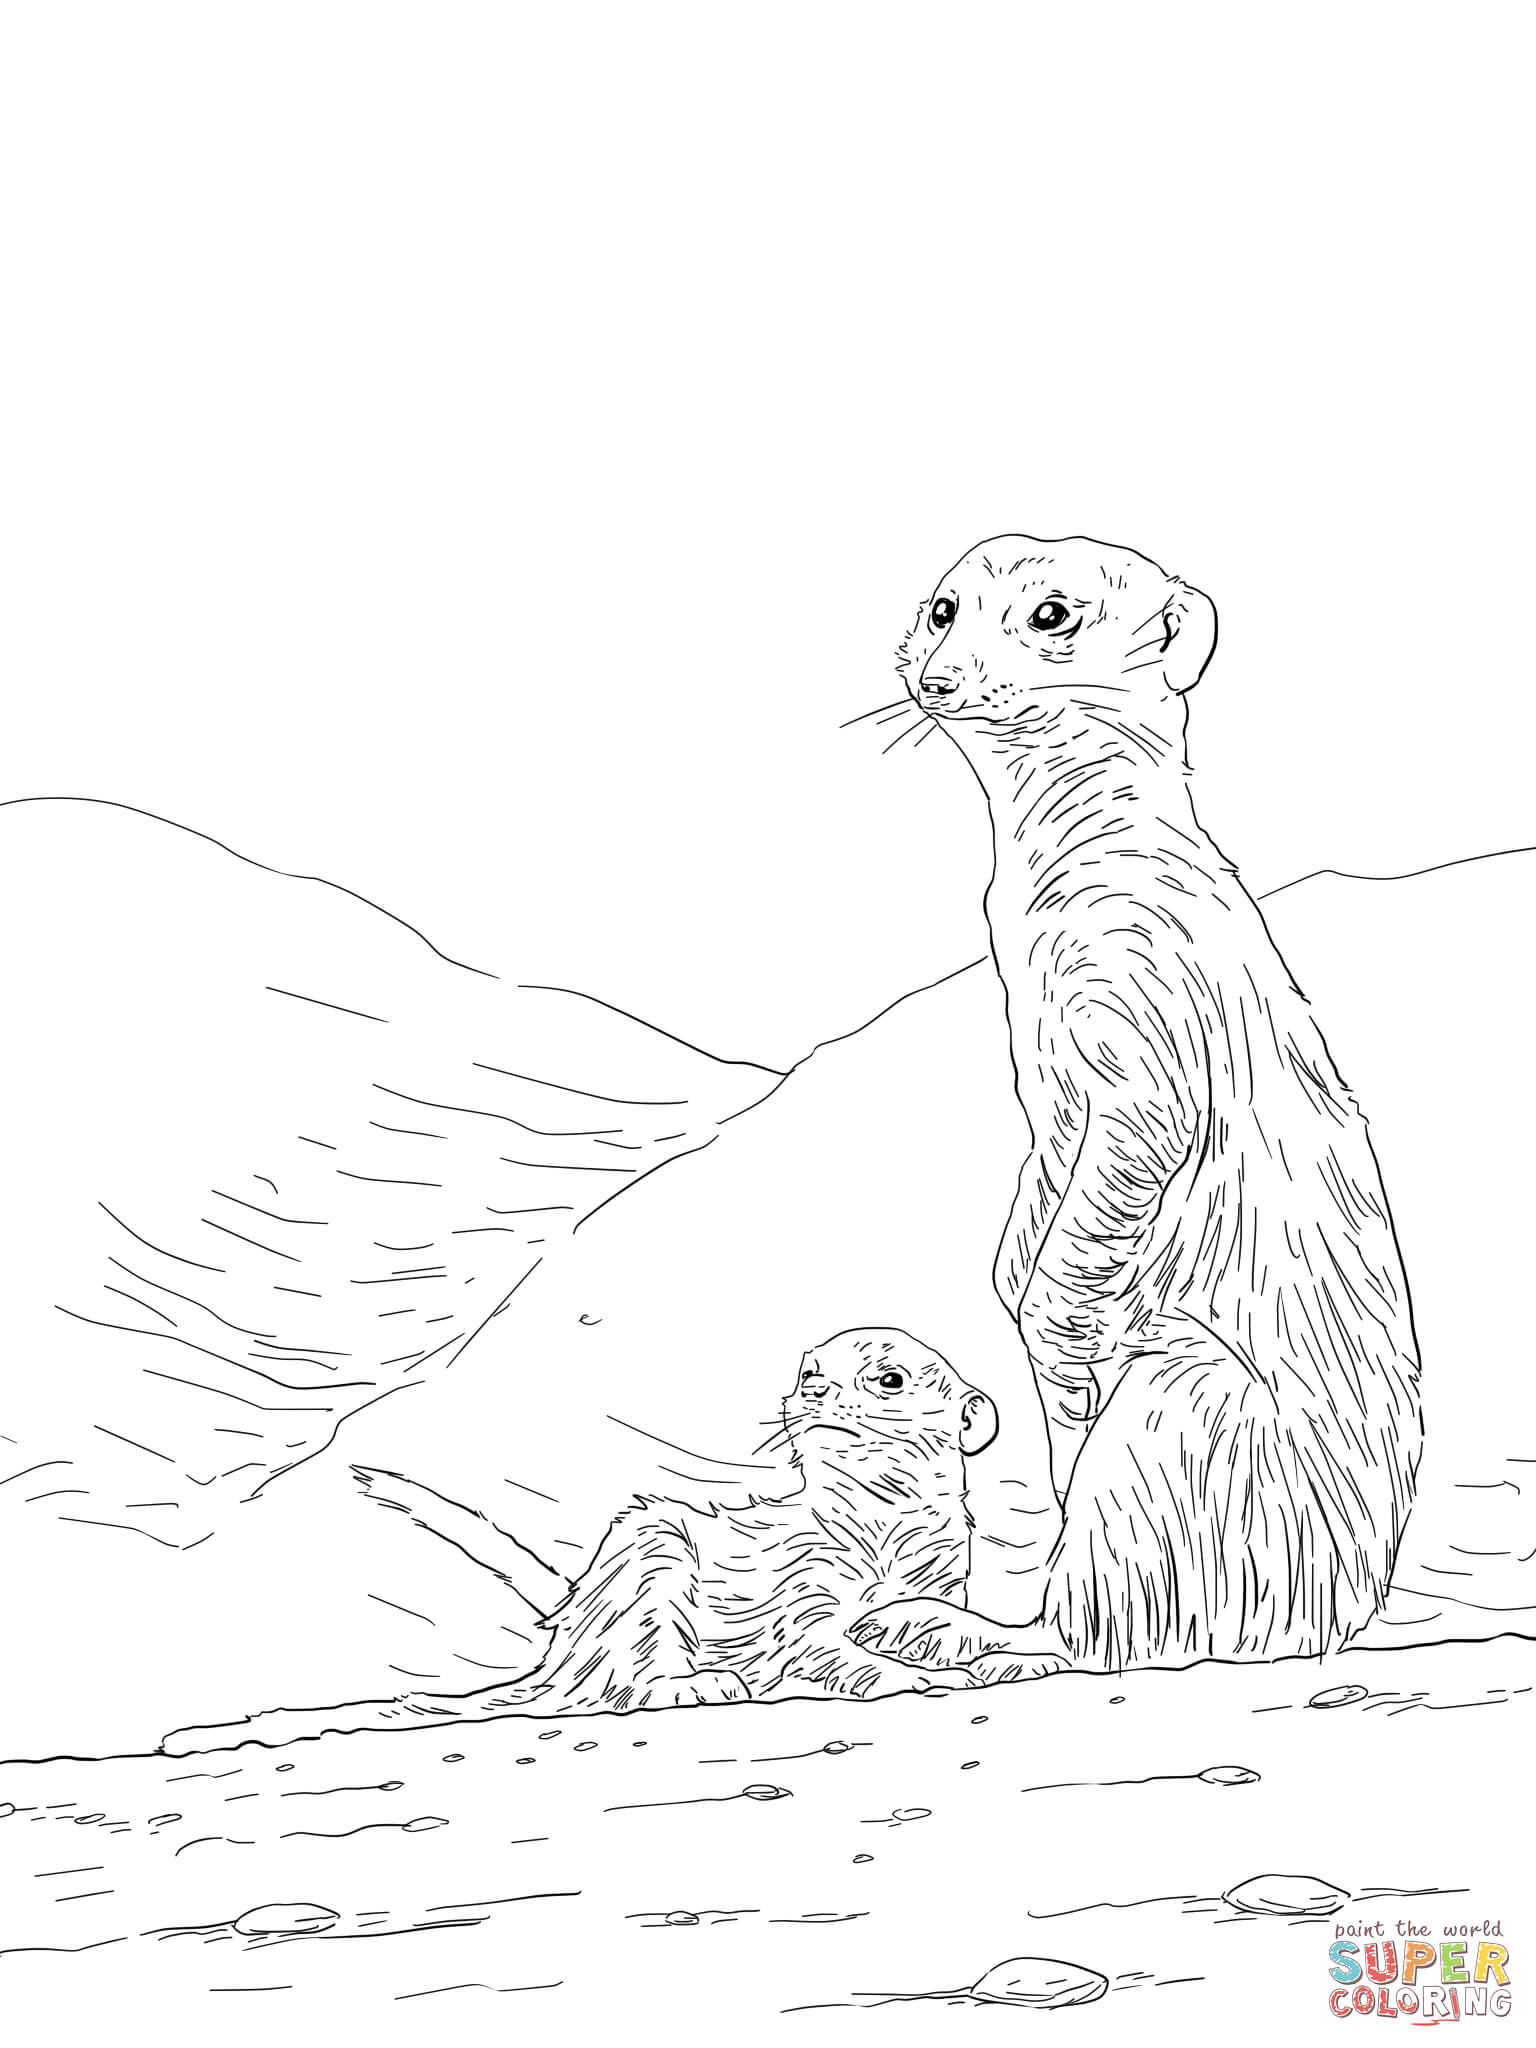 meerkat colouring pages meerkat coloring pages coloring home colouring meerkat pages